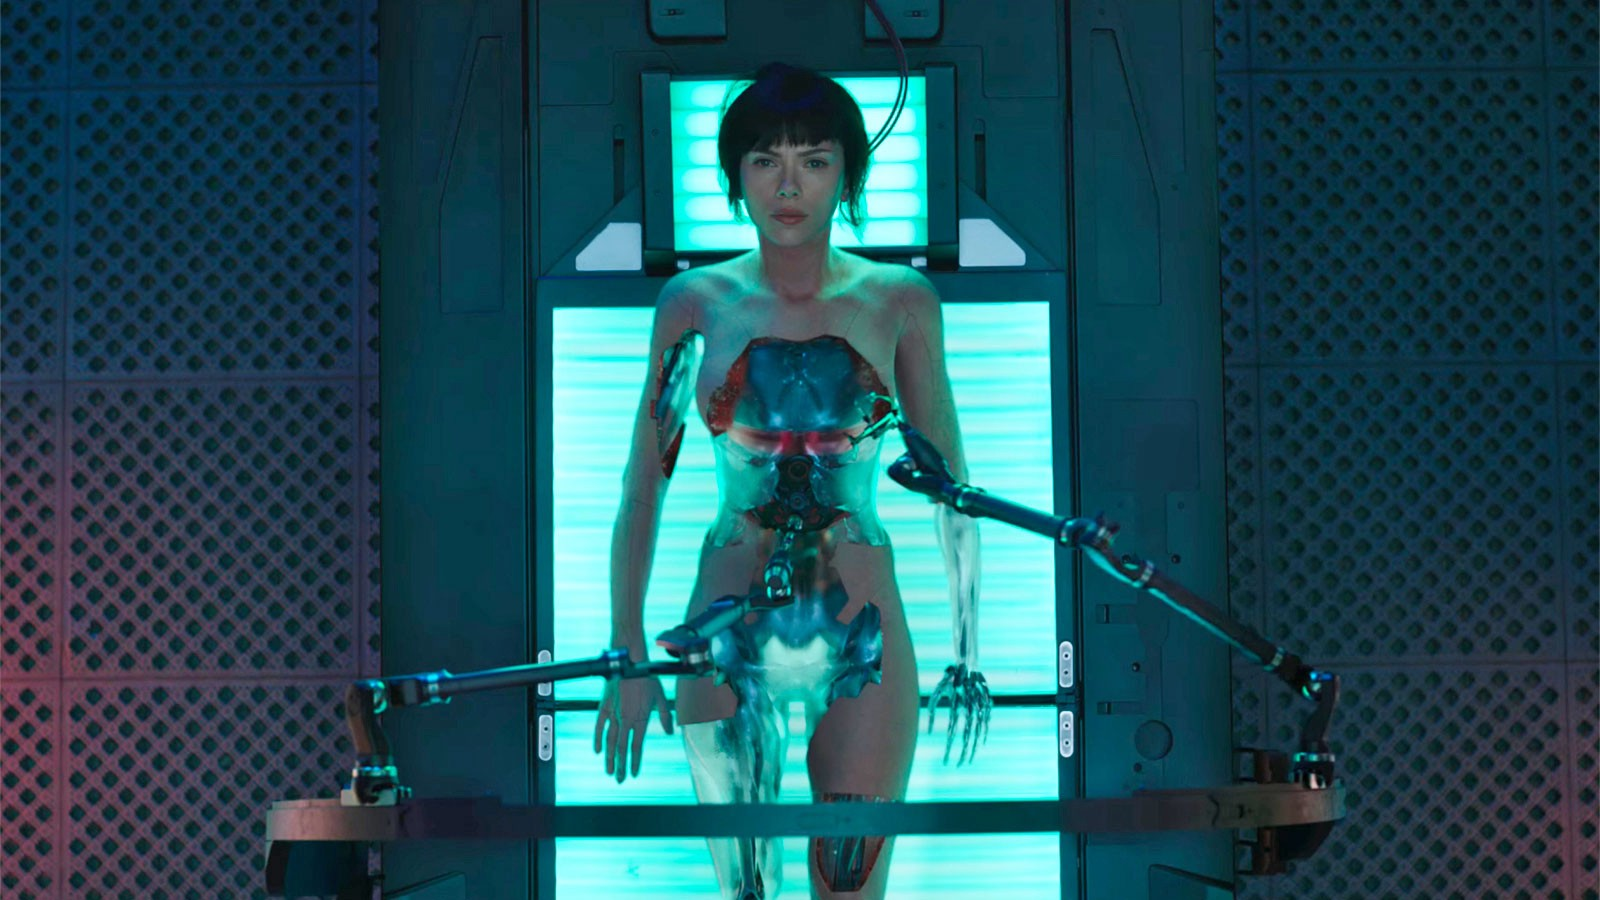 Ghost In The Shell Might Make You Uncomfortable And That S Good By Matthew Gault Defiant Medium